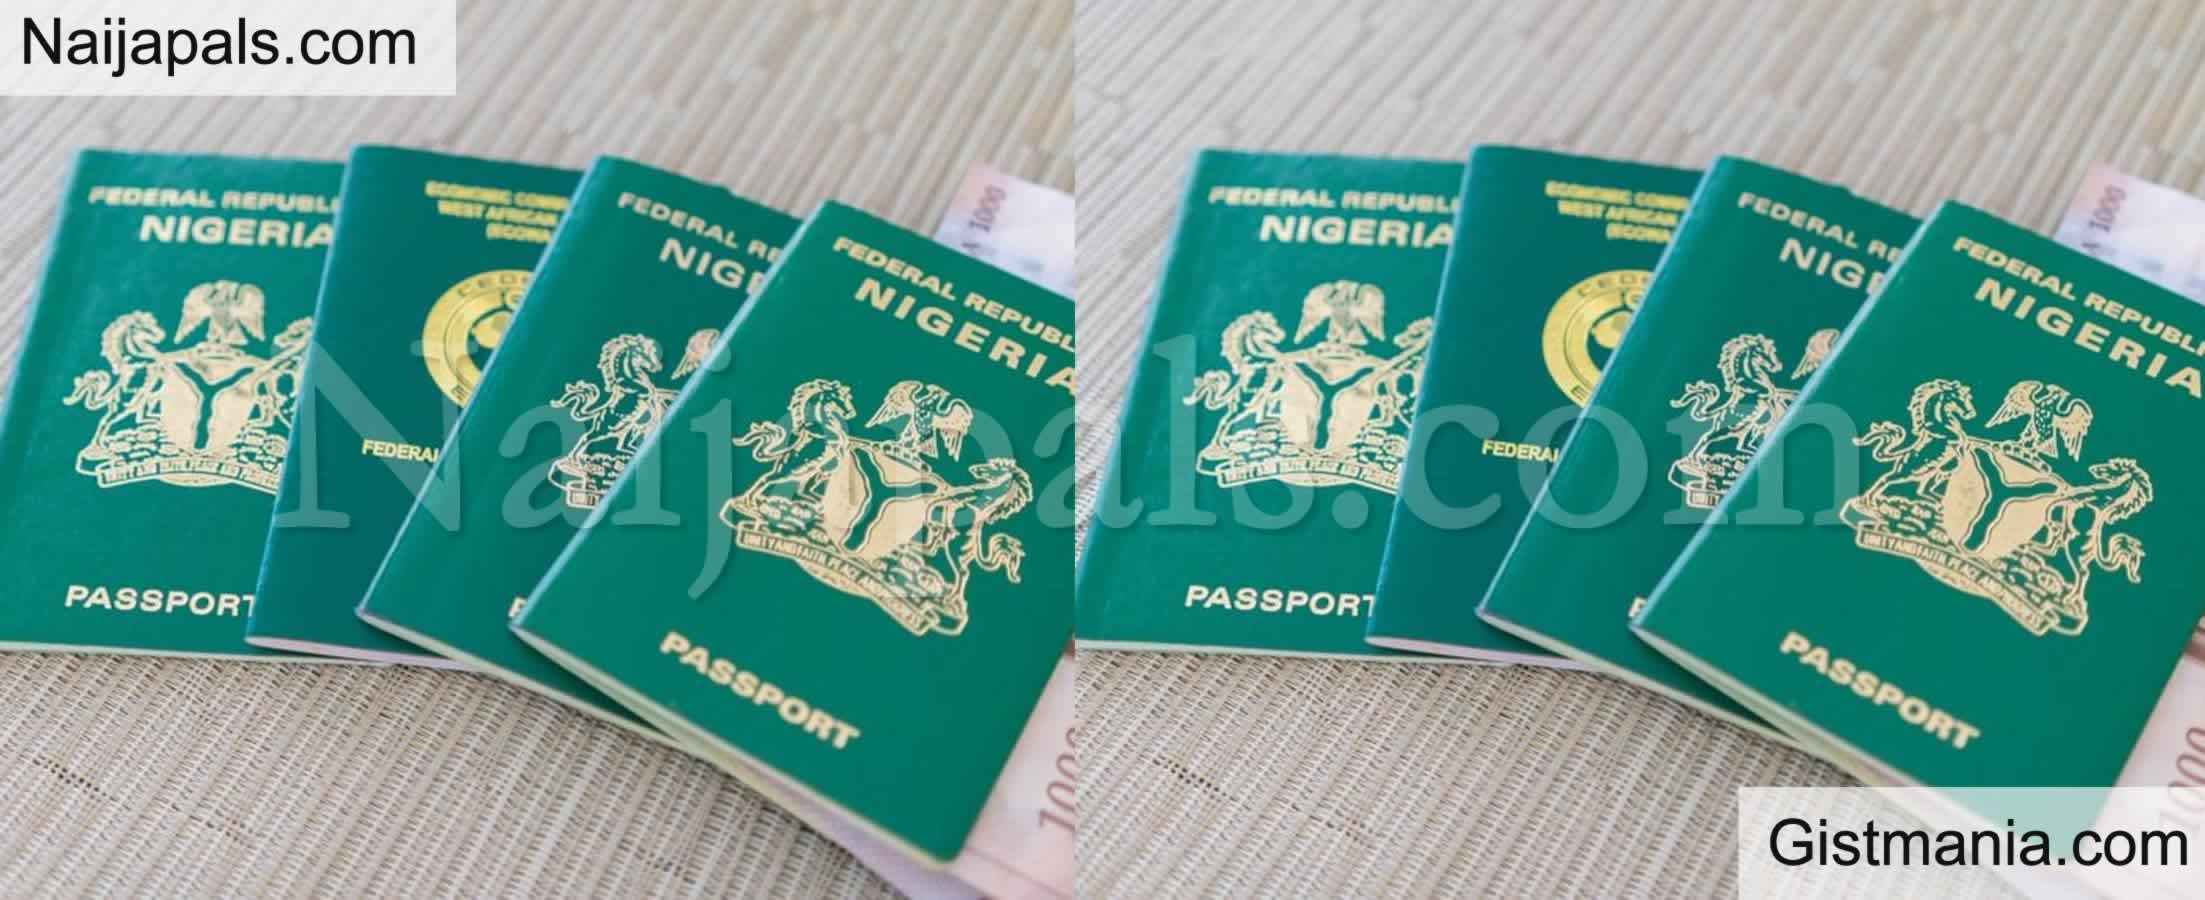 Introducing Five Most Powerful African Passports That Open Doors To Many Countries Across The World